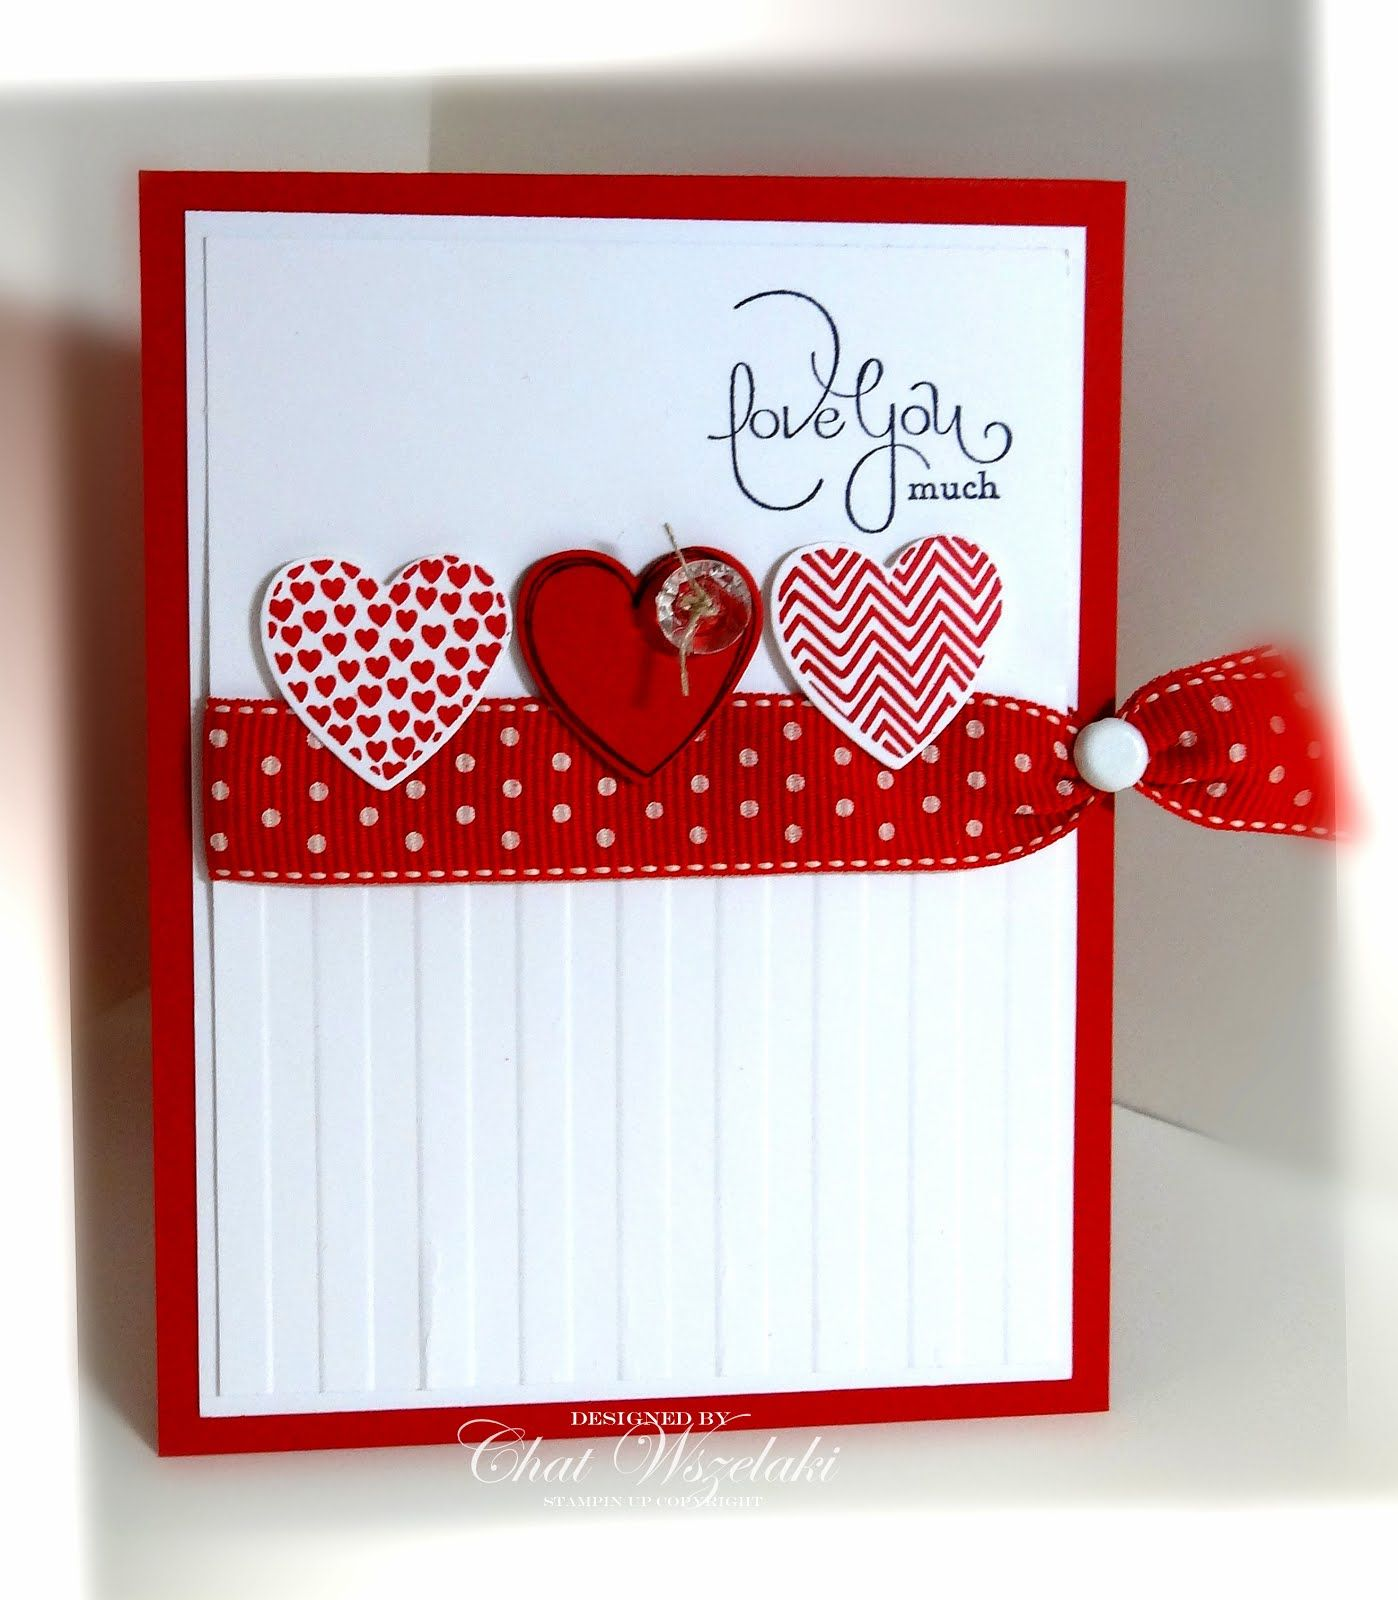 Stampin Up Valentine By Chat Wszelaki At Me My Stamps And I Love